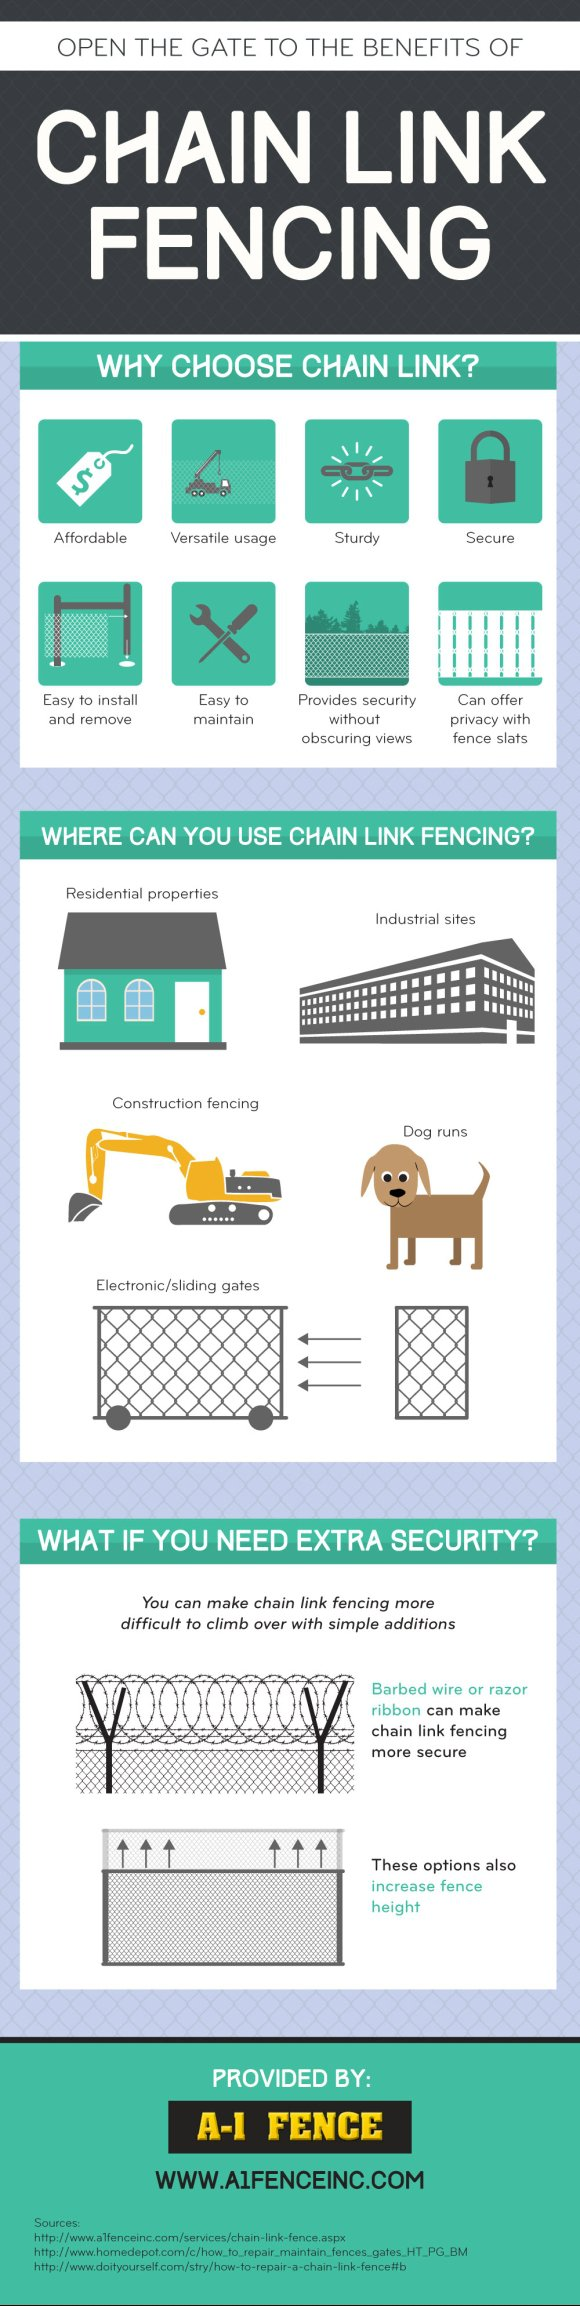 Chain Link Fencing Infographic